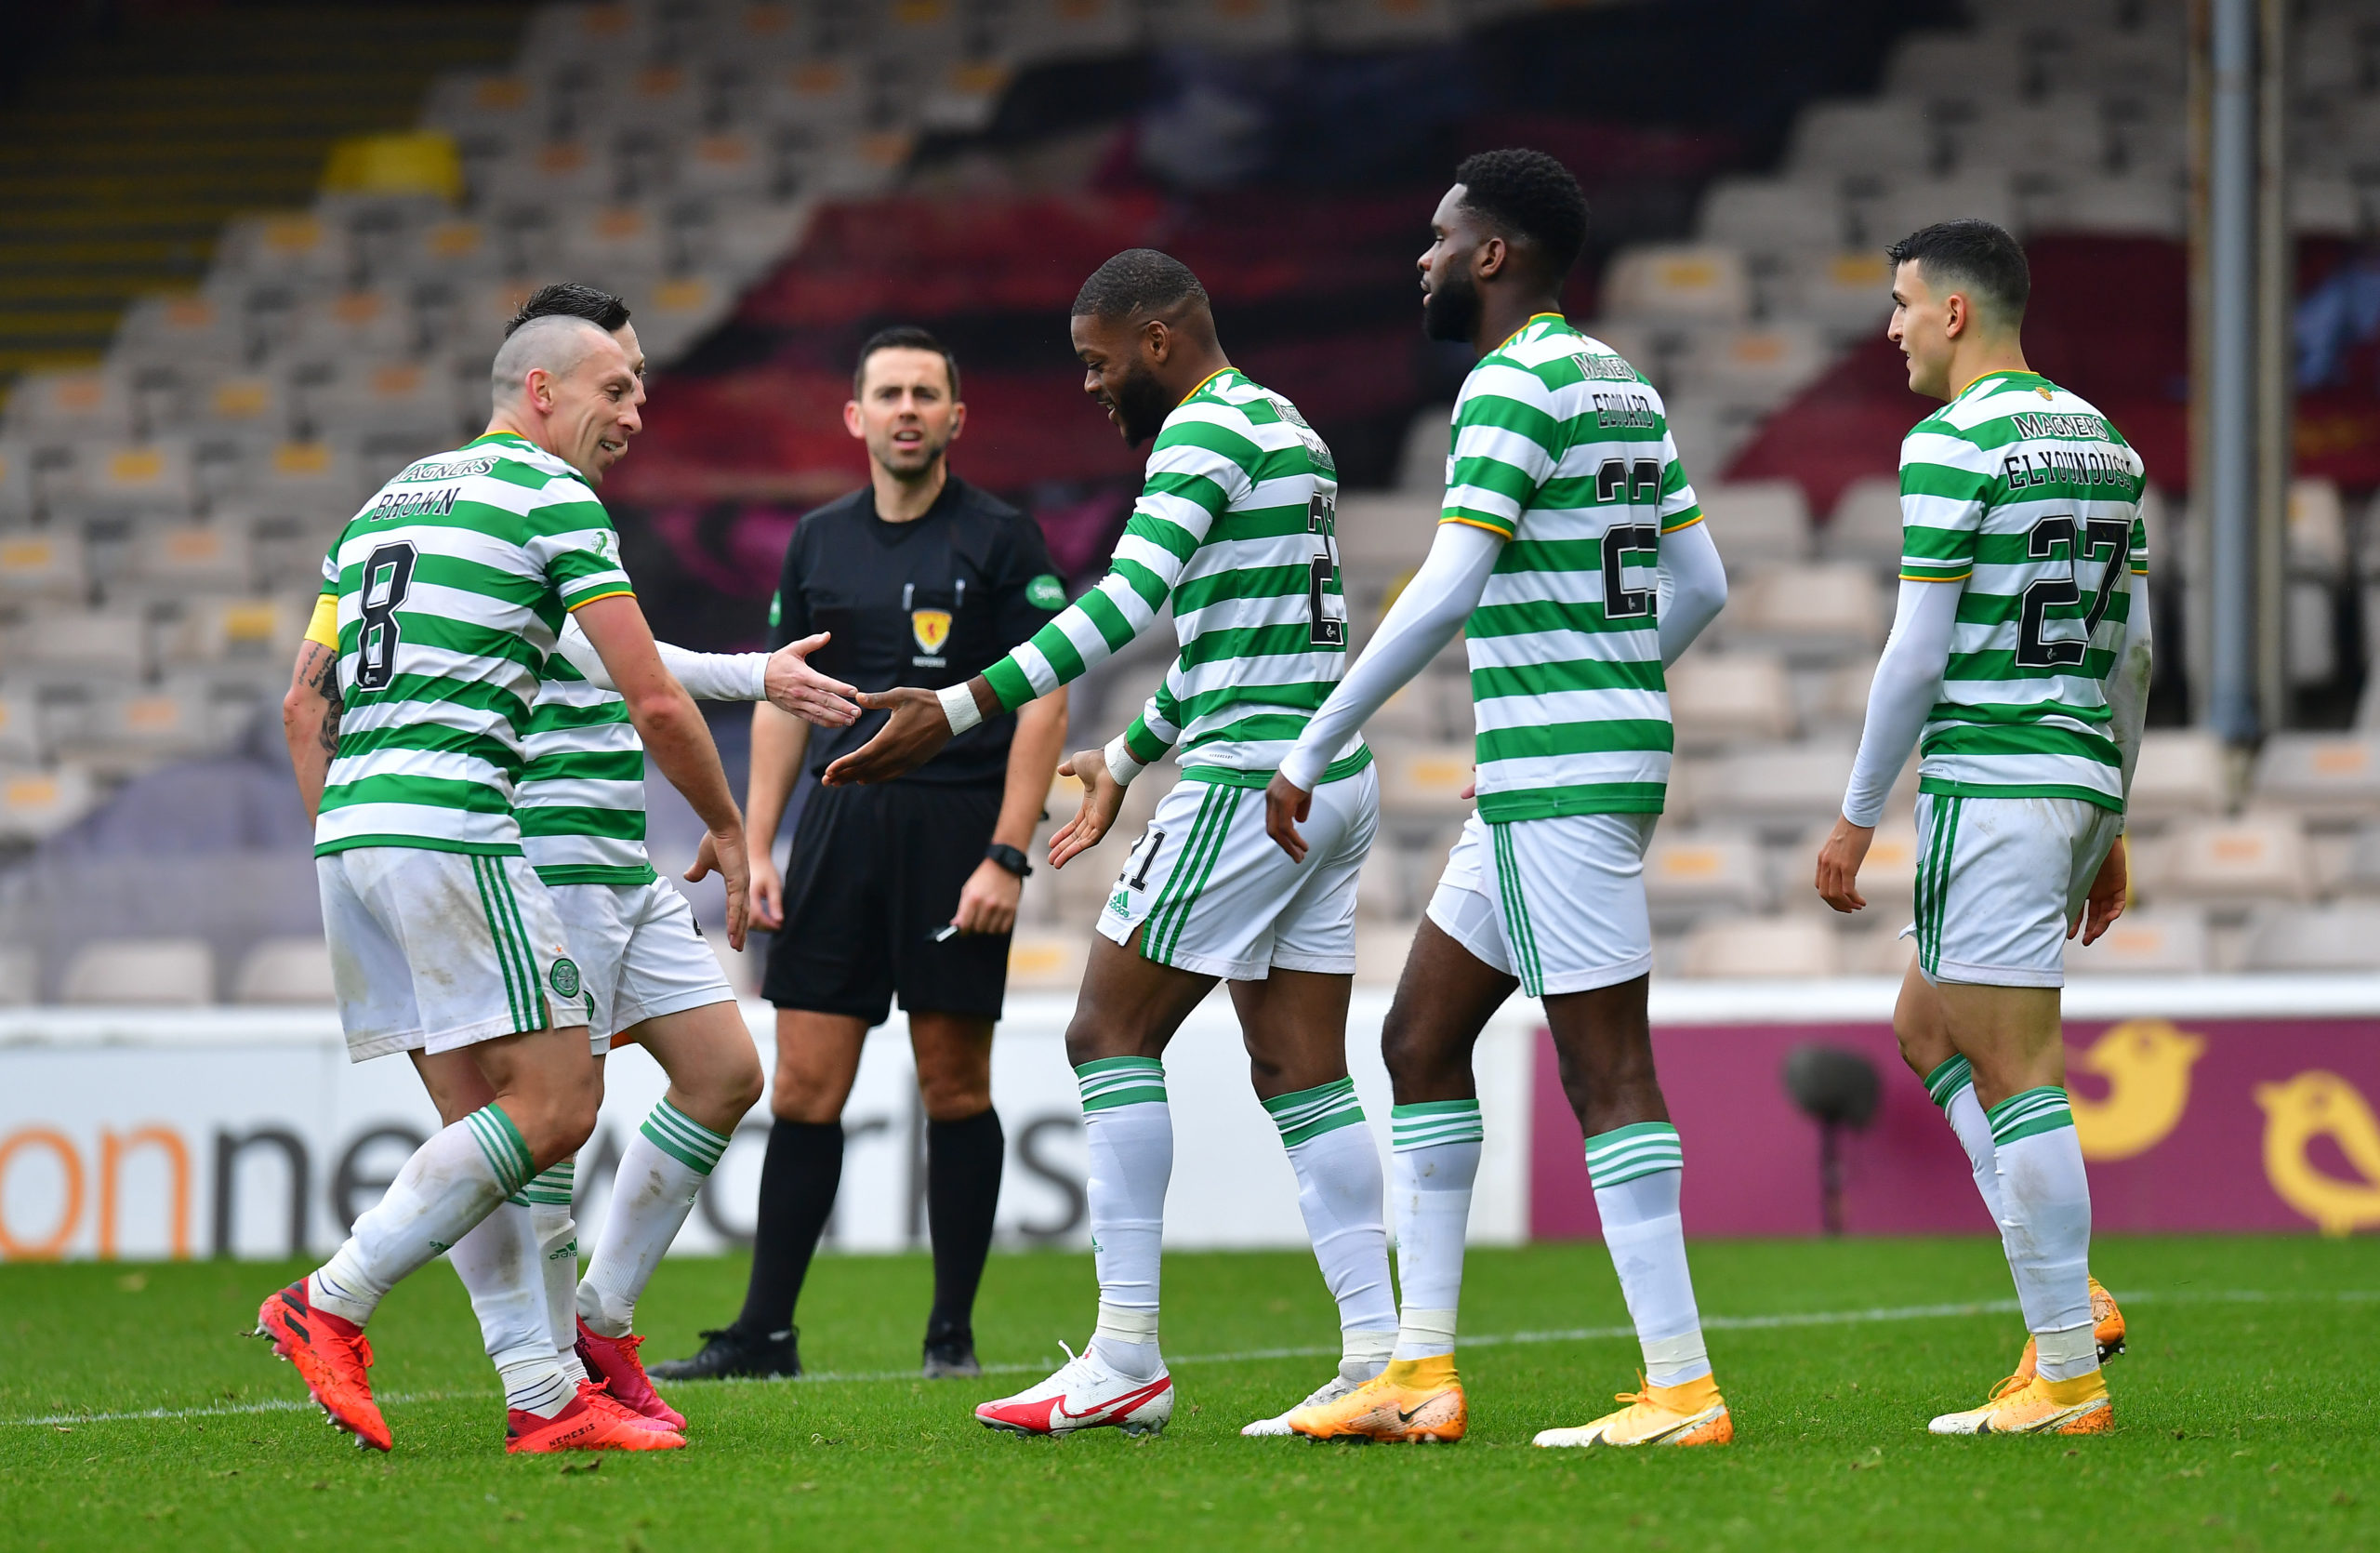 Celtic players celebrate at Motherwell